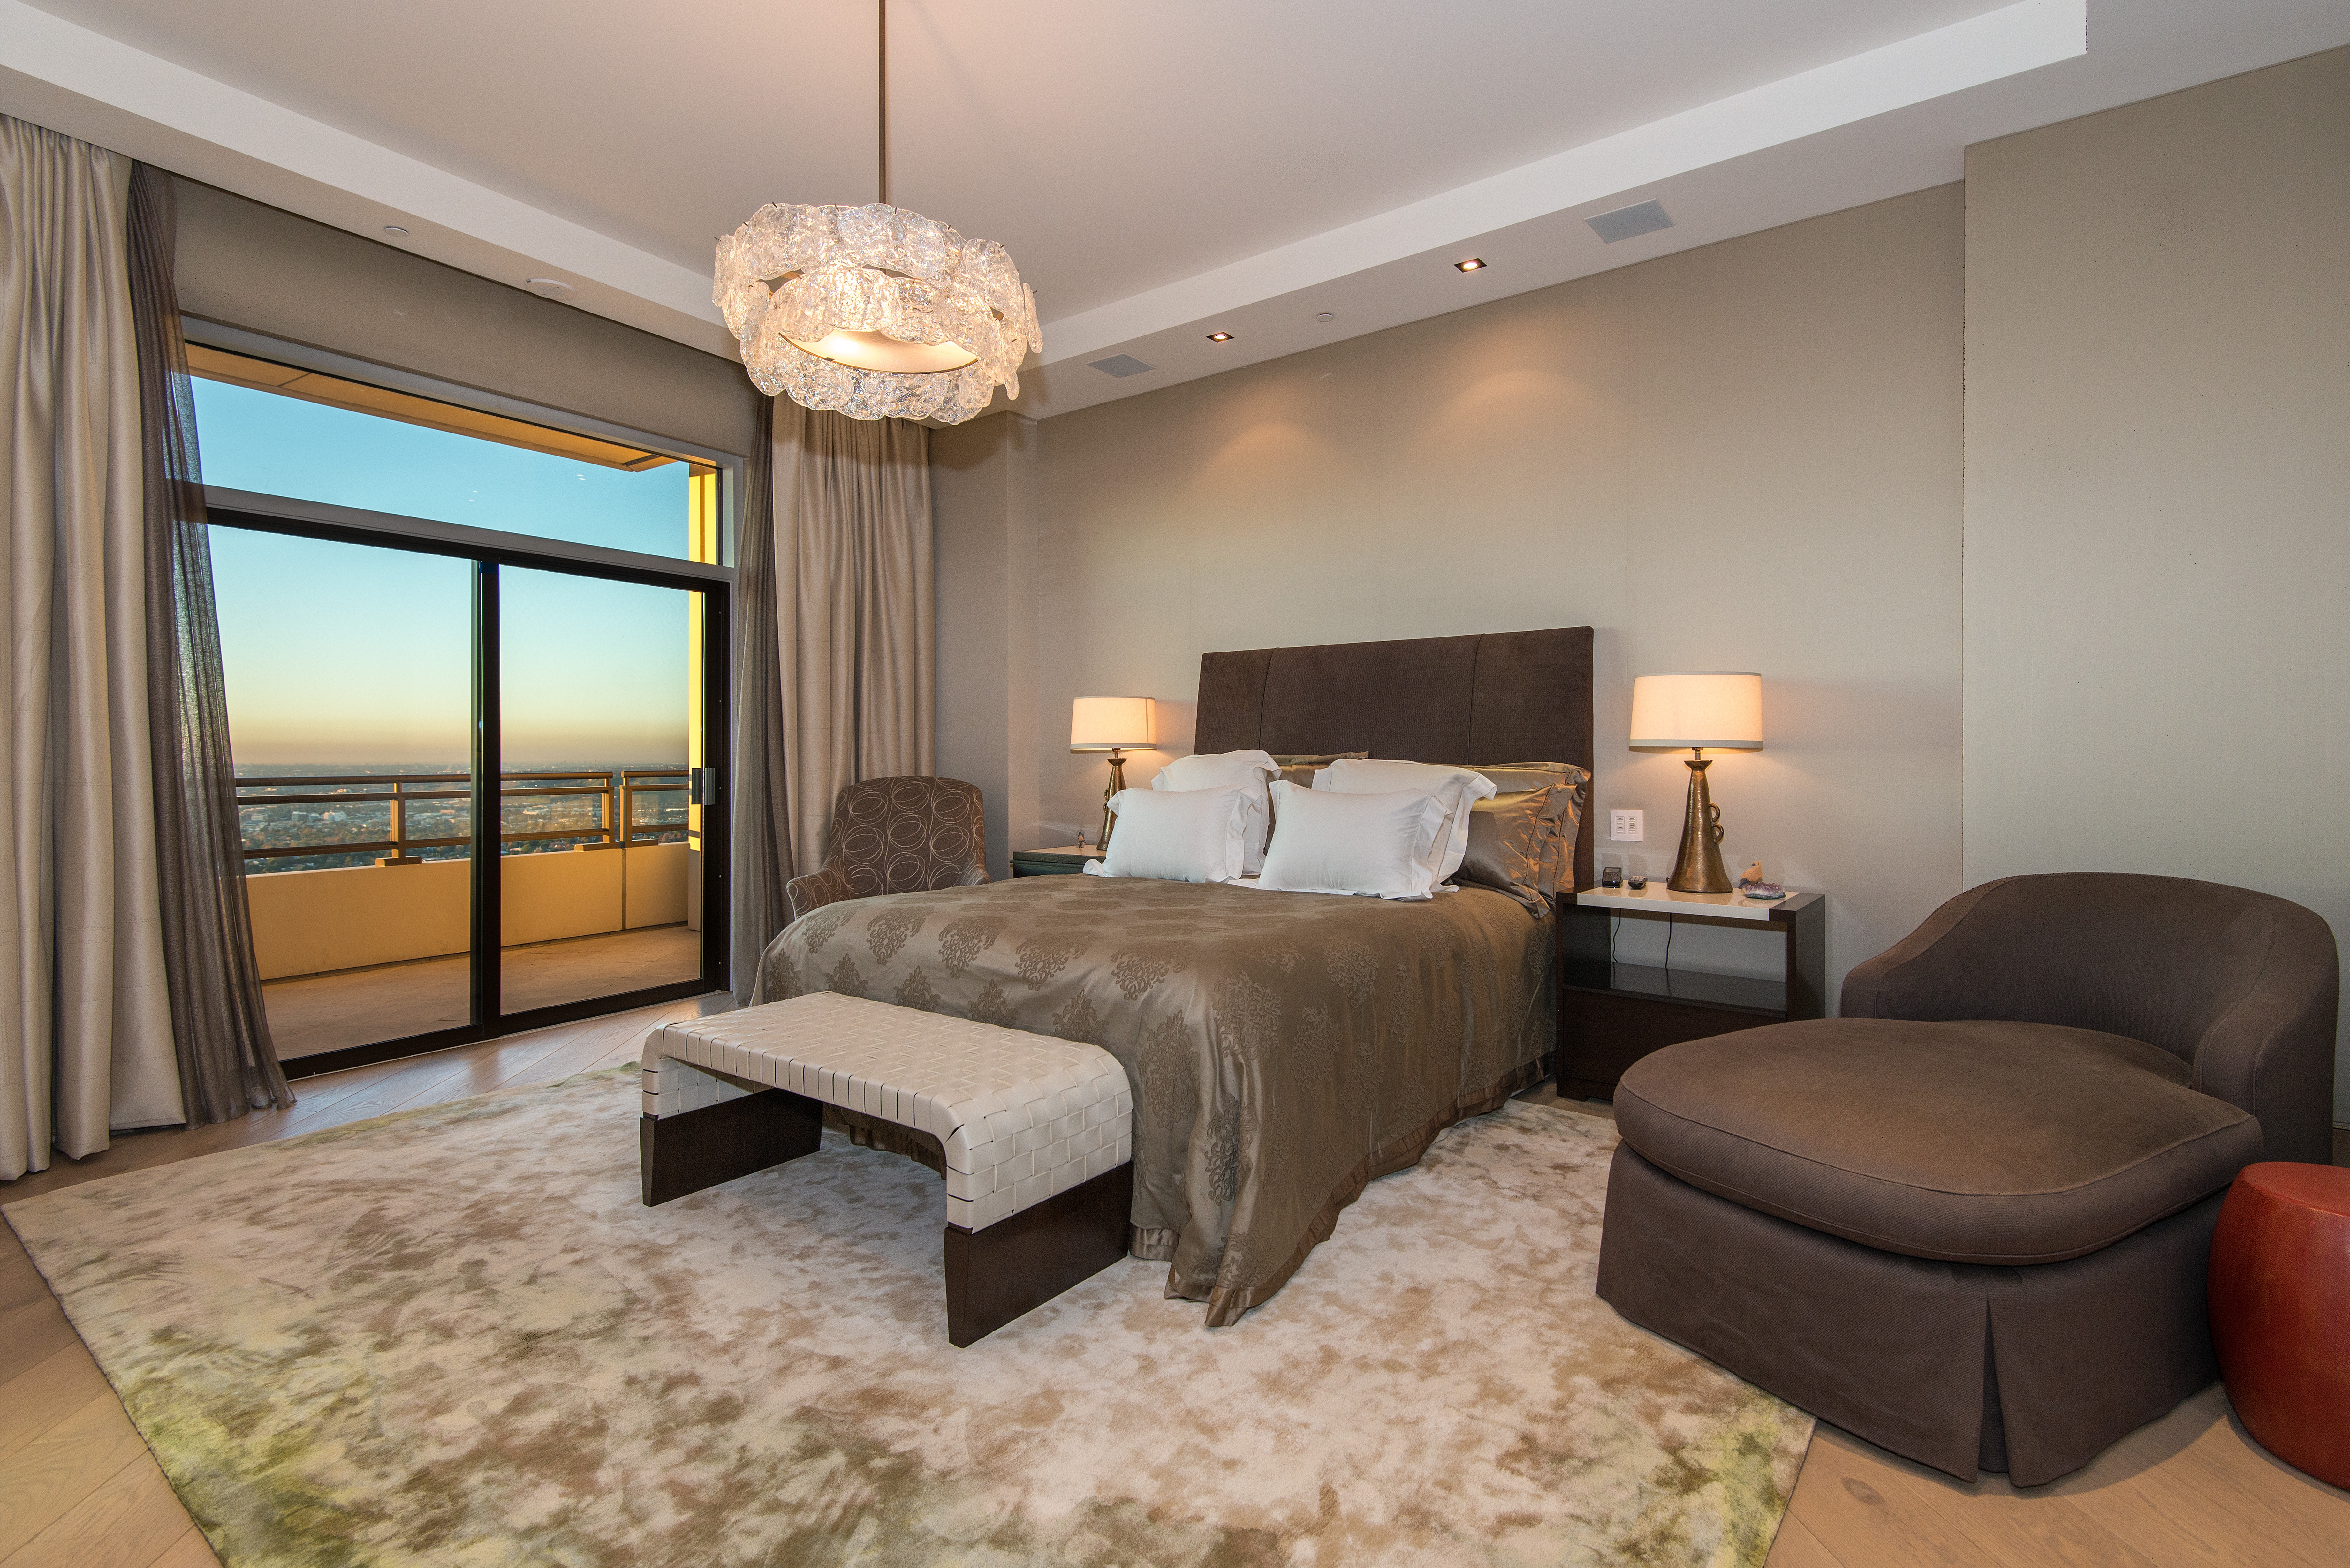 Glamorous Hotel Inspired Bedroom With Crystal Chandelier Lighting (View 21 of 25)